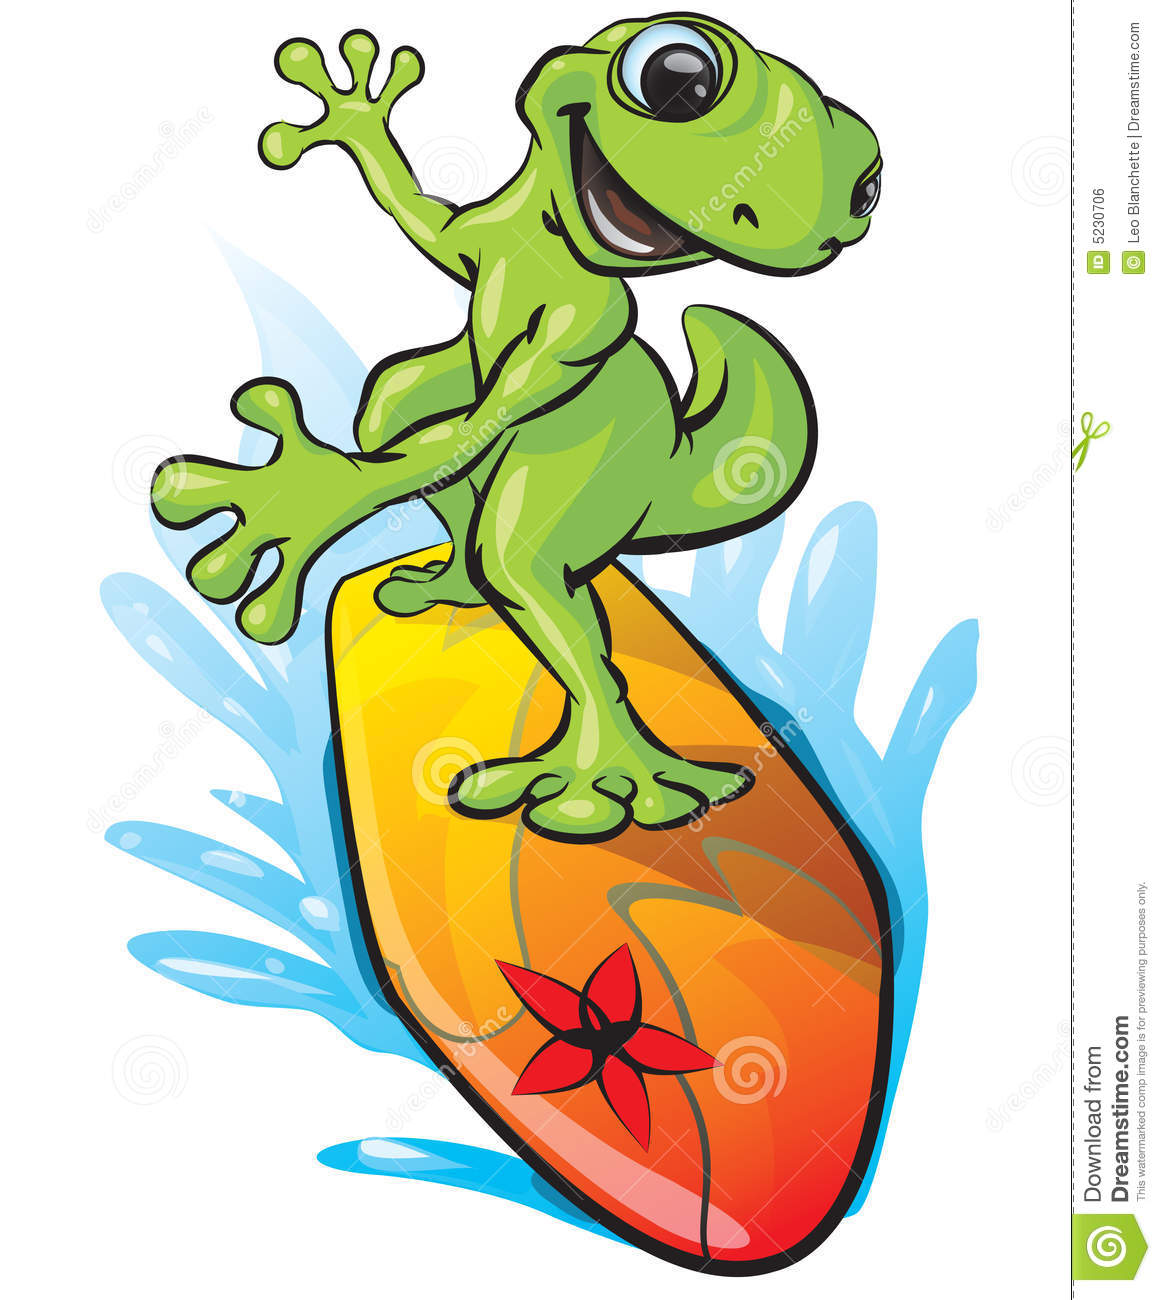 illustrated surfing frog royalty free stock image image surfer clipart on wave surfer clip art girl